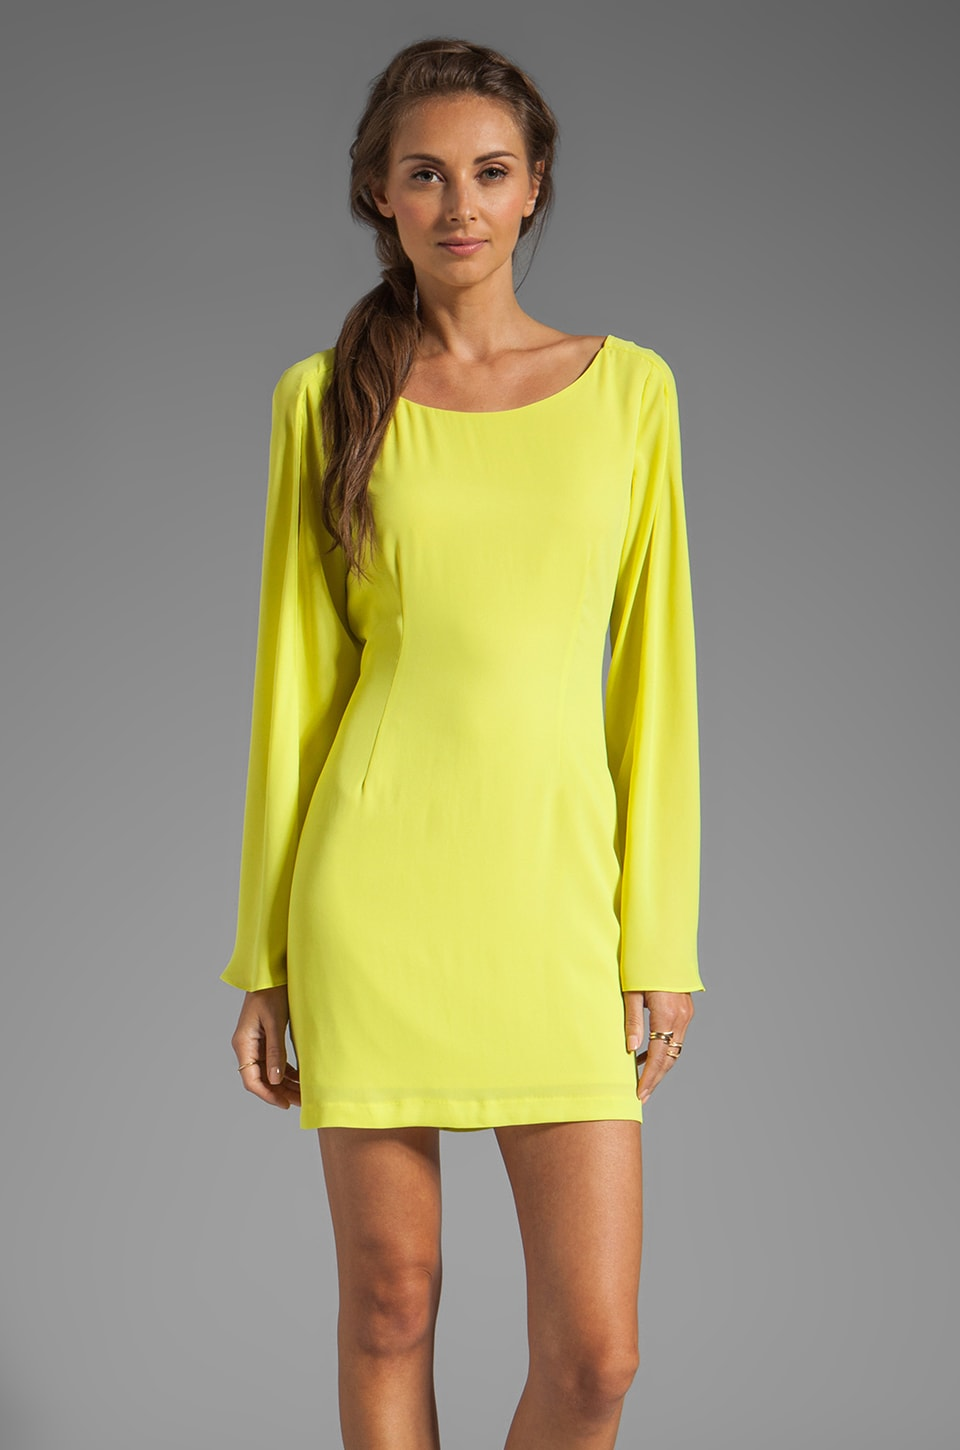 Ladakh The Go Getter Dress in Citrus